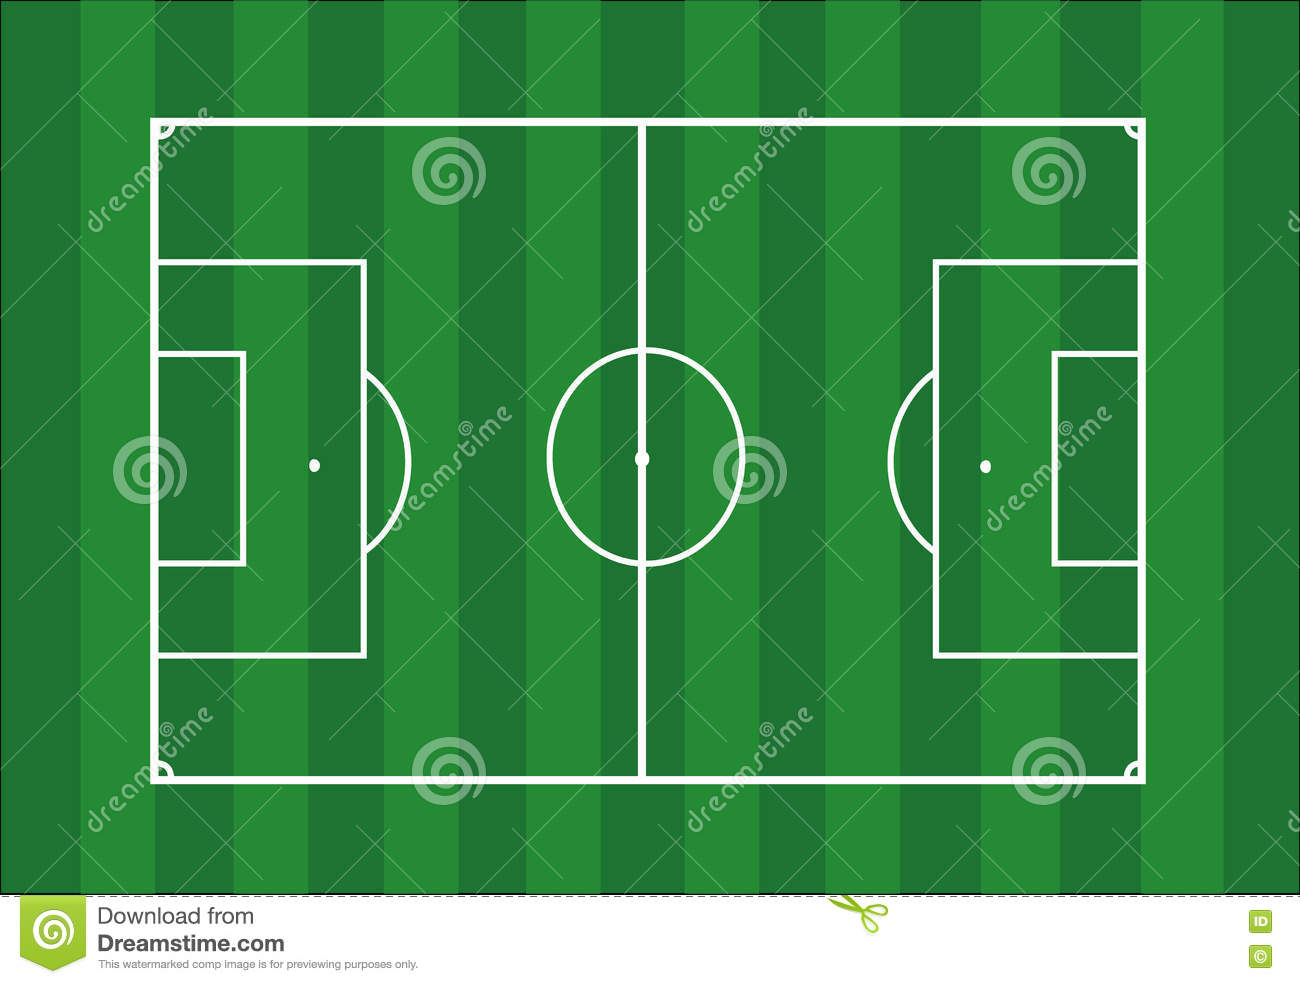 Soccer field football pitch stock vector illustration of lines soccer field football pitch ccuart Gallery